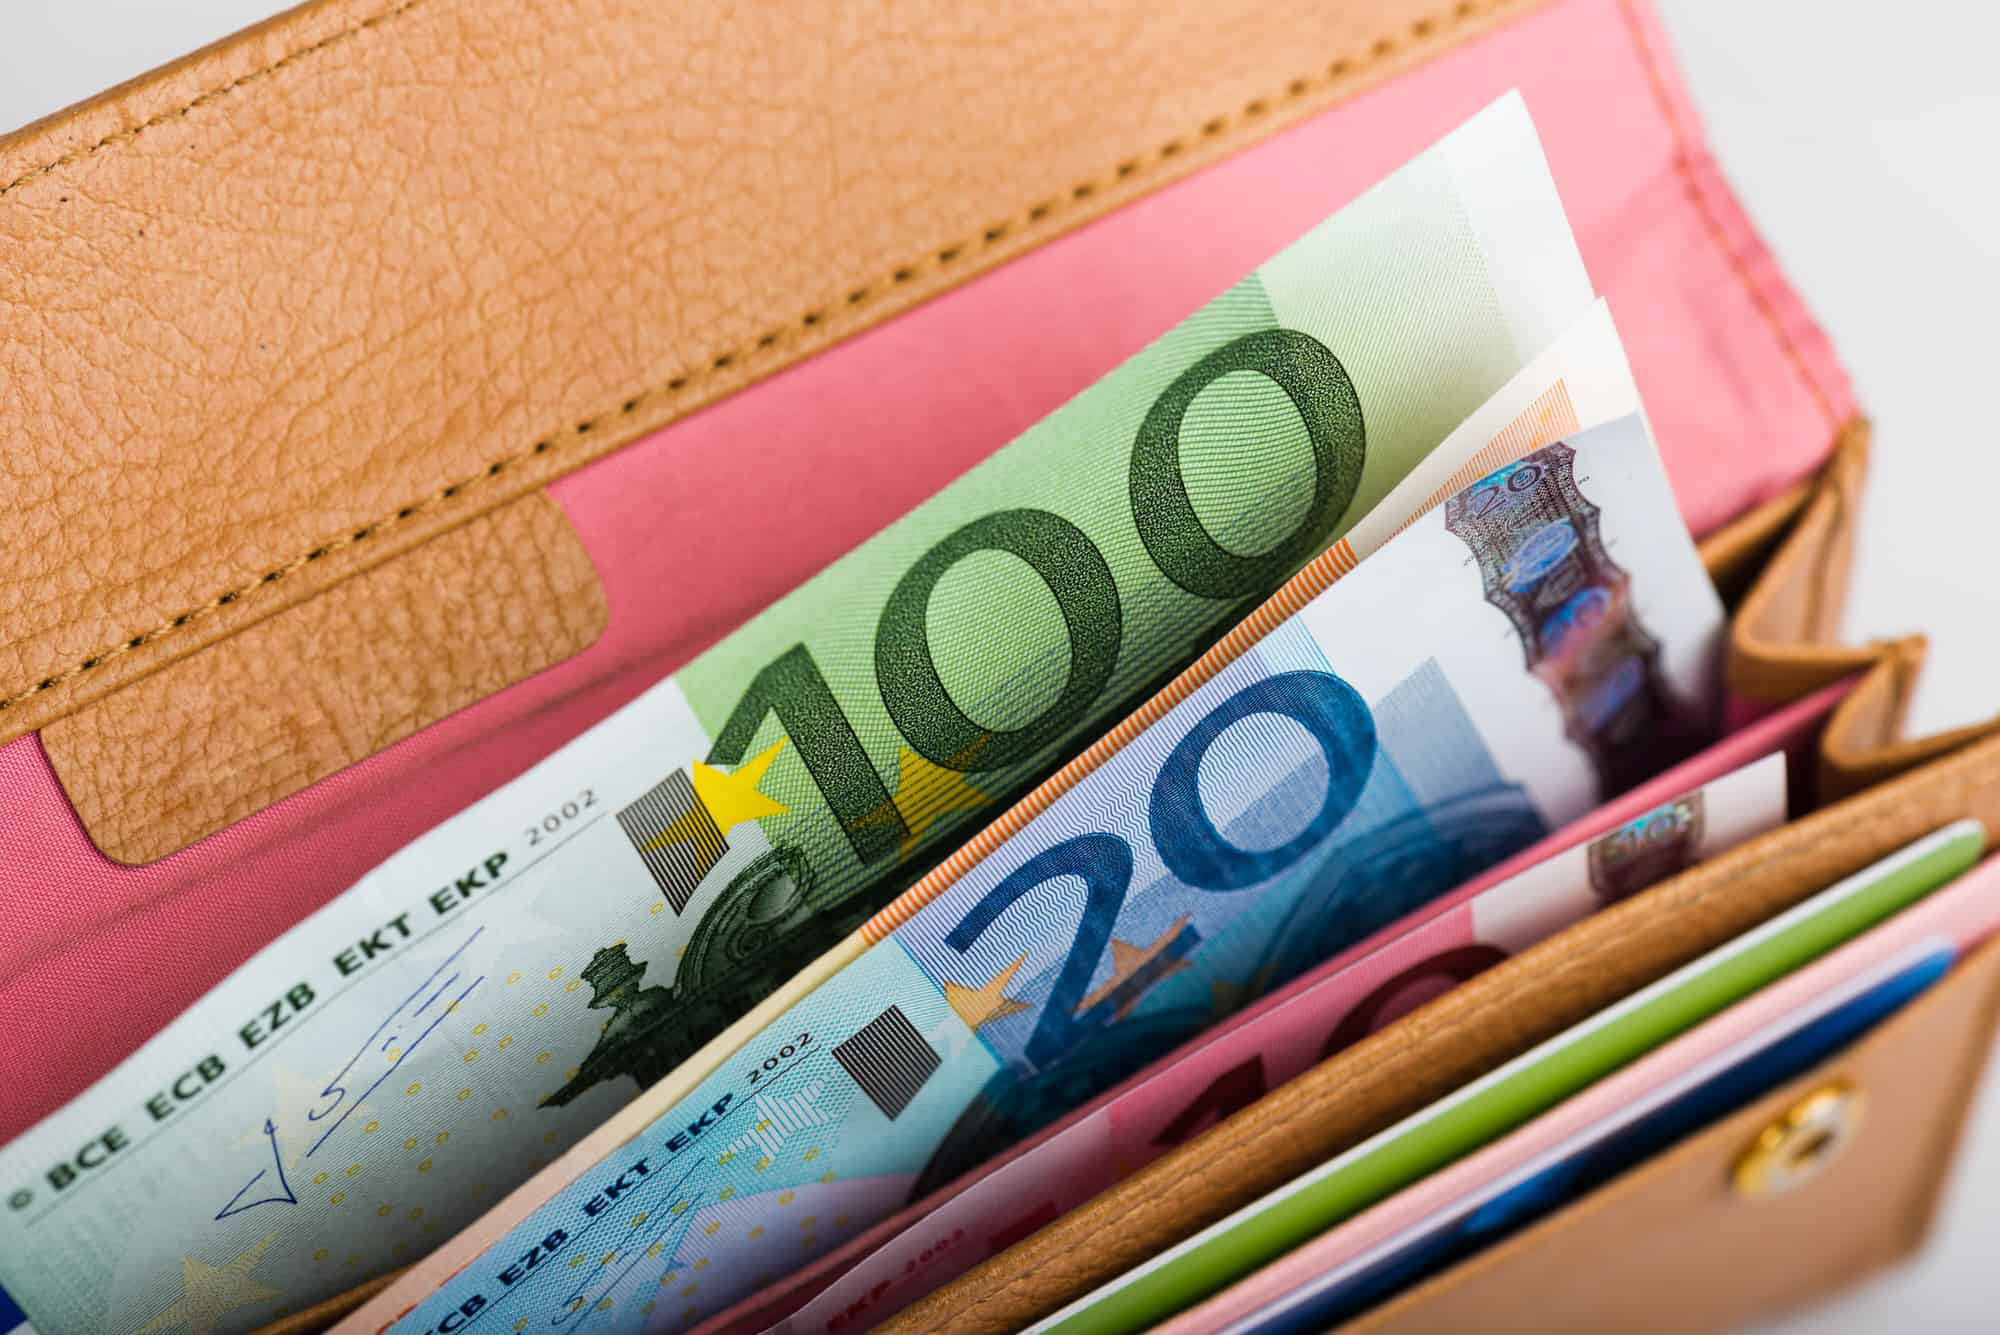 Peer-to-Peer-Lending: Kreditvergabe von privat an privat